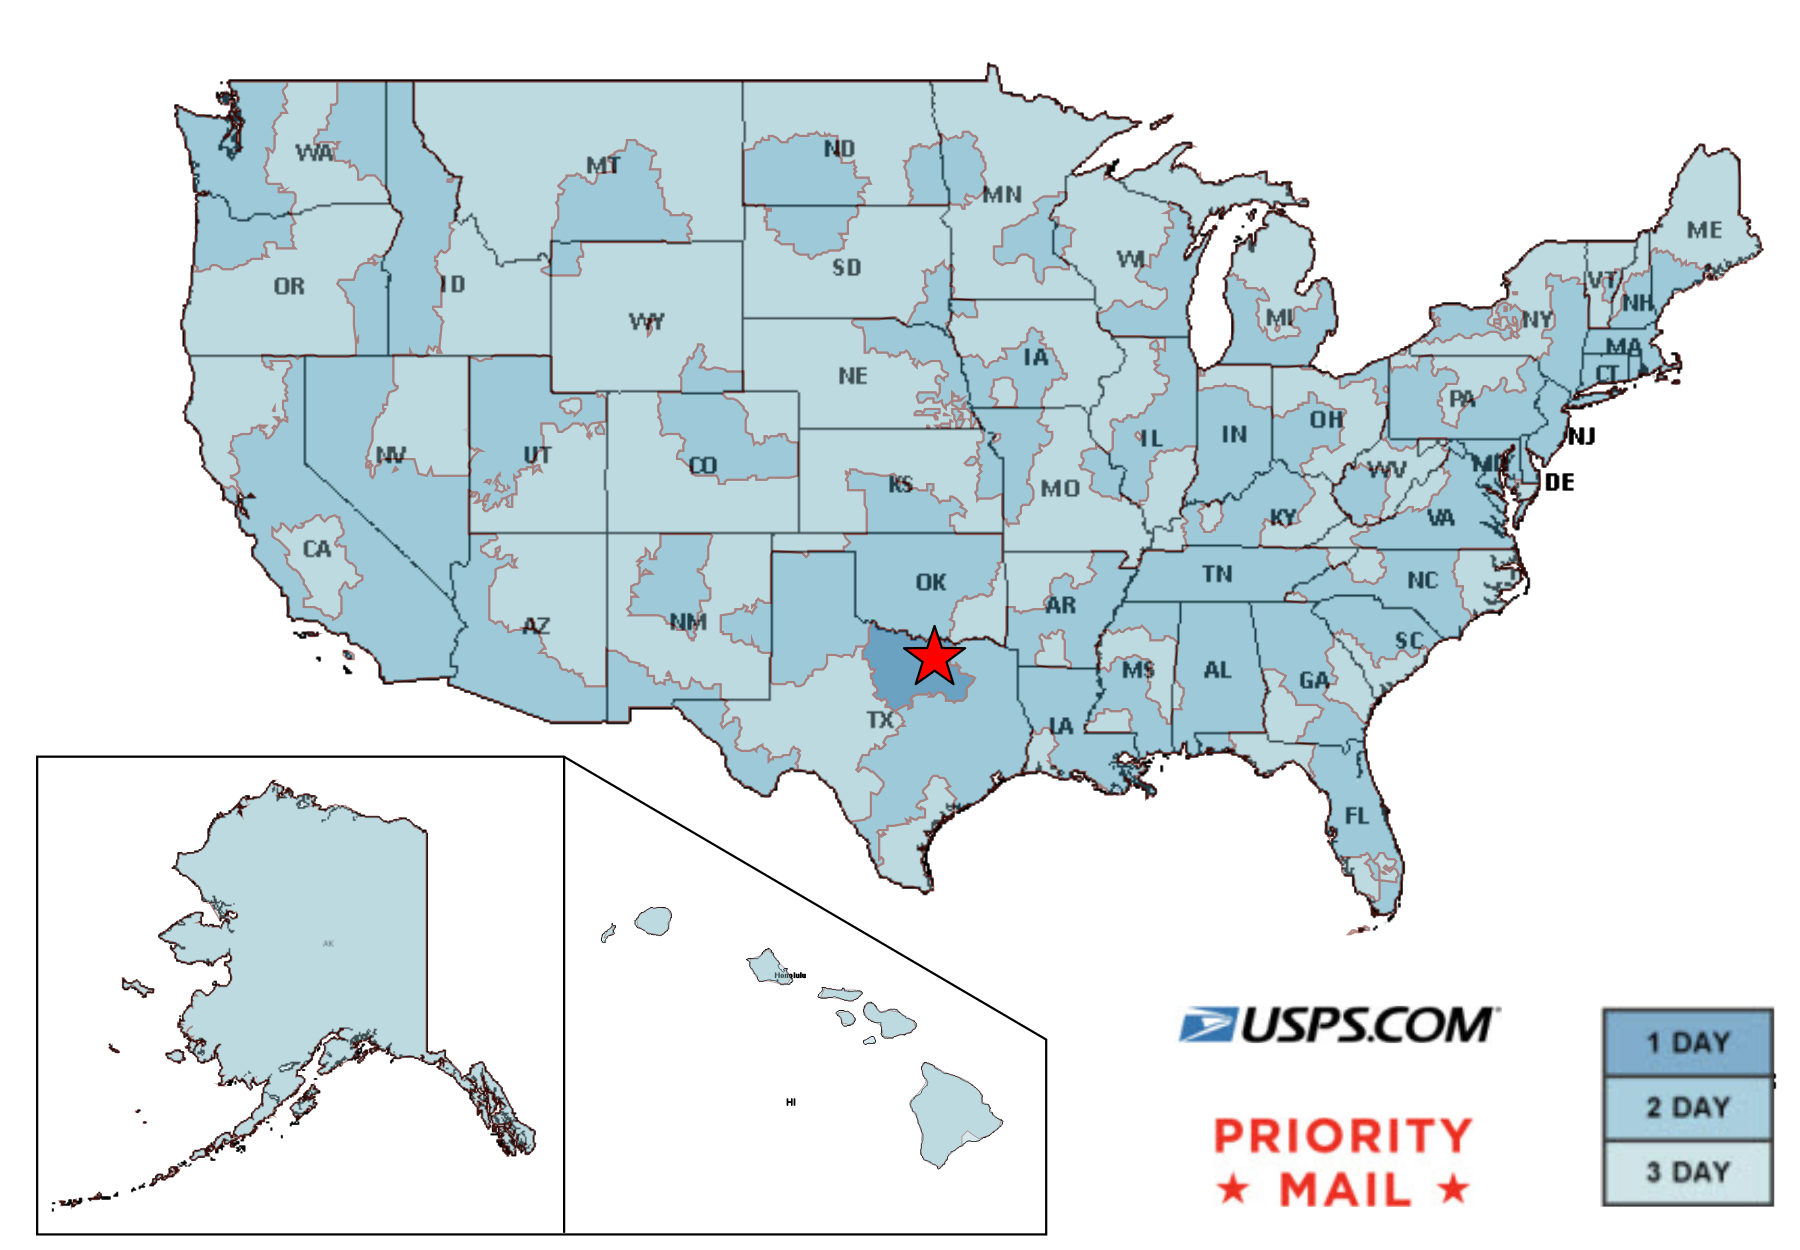 usps-shipping-map.png